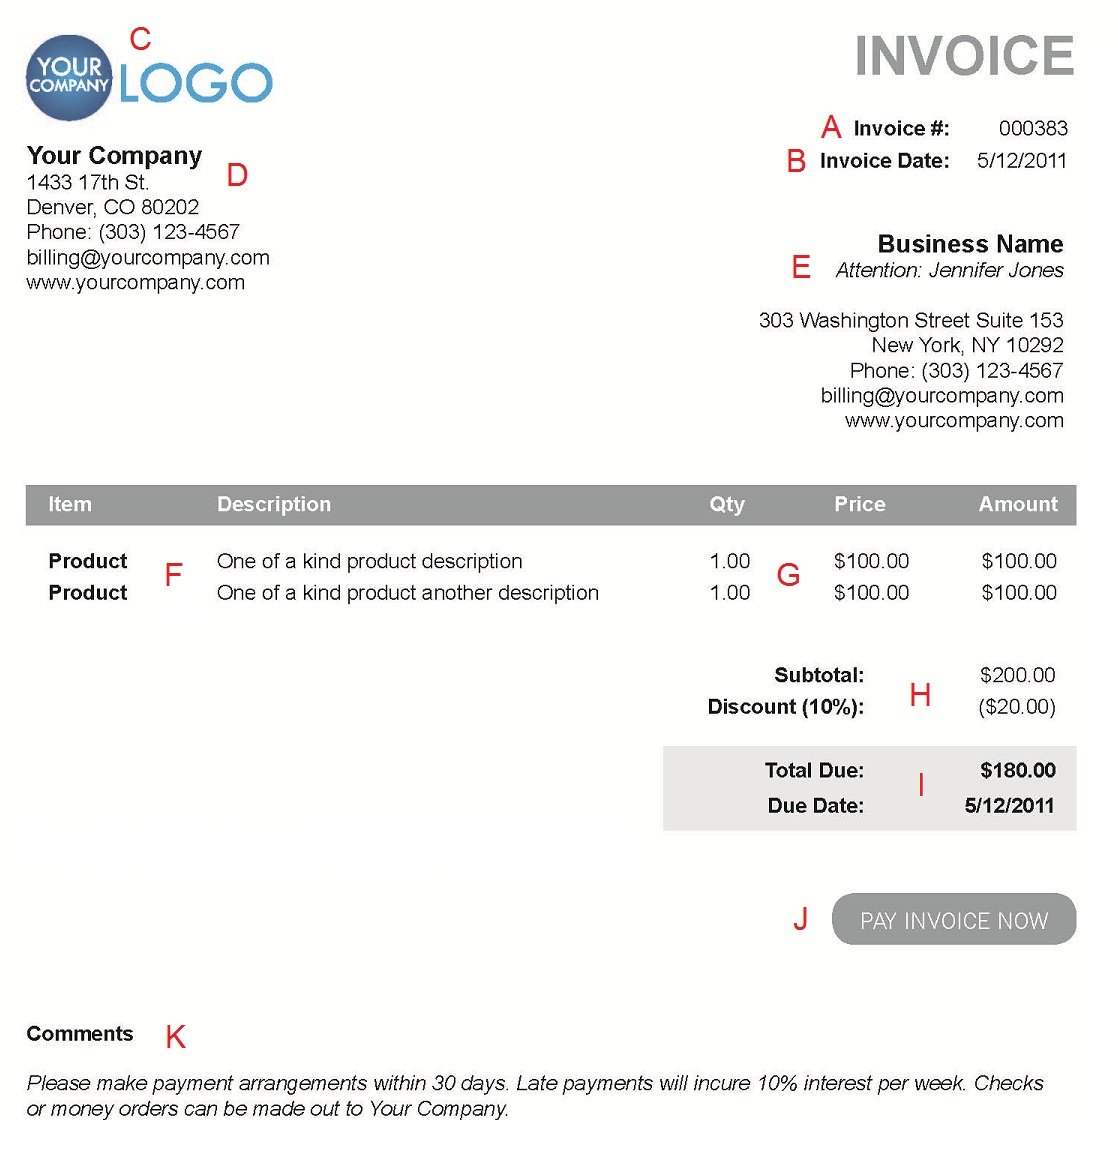 Soulfulpowerus  Scenic The  Different Sections Of An Electronic Payment Invoice With Lovable A  With Enchanting Rent Invoice Template Free Also Pro Invoice In Addition Carbonless Invoice Book And Used Car Invoice Price As Well As Free Proforma Invoice Template Additionally Invoice Making Software From Paysimplecom With Soulfulpowerus  Lovable The  Different Sections Of An Electronic Payment Invoice With Enchanting A  And Scenic Rent Invoice Template Free Also Pro Invoice In Addition Carbonless Invoice Book From Paysimplecom